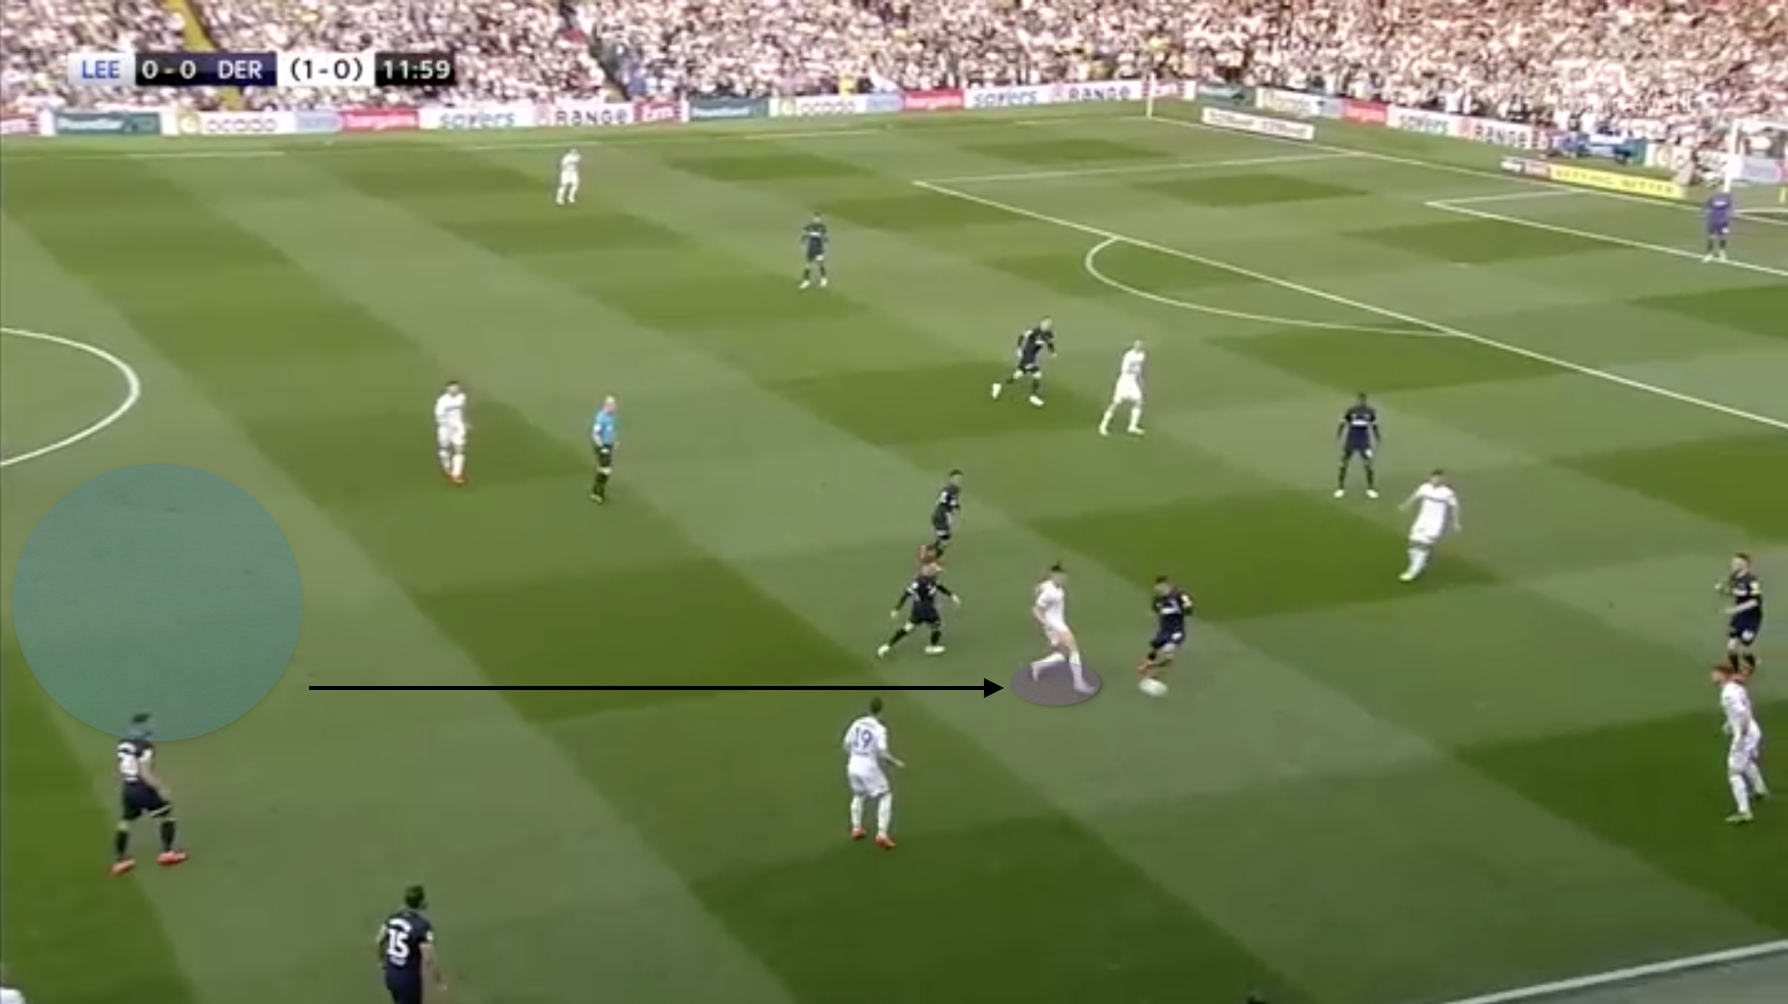 EFL Championship 2018/19 Tactical Analysis: Kalvin Phillips at Leeds